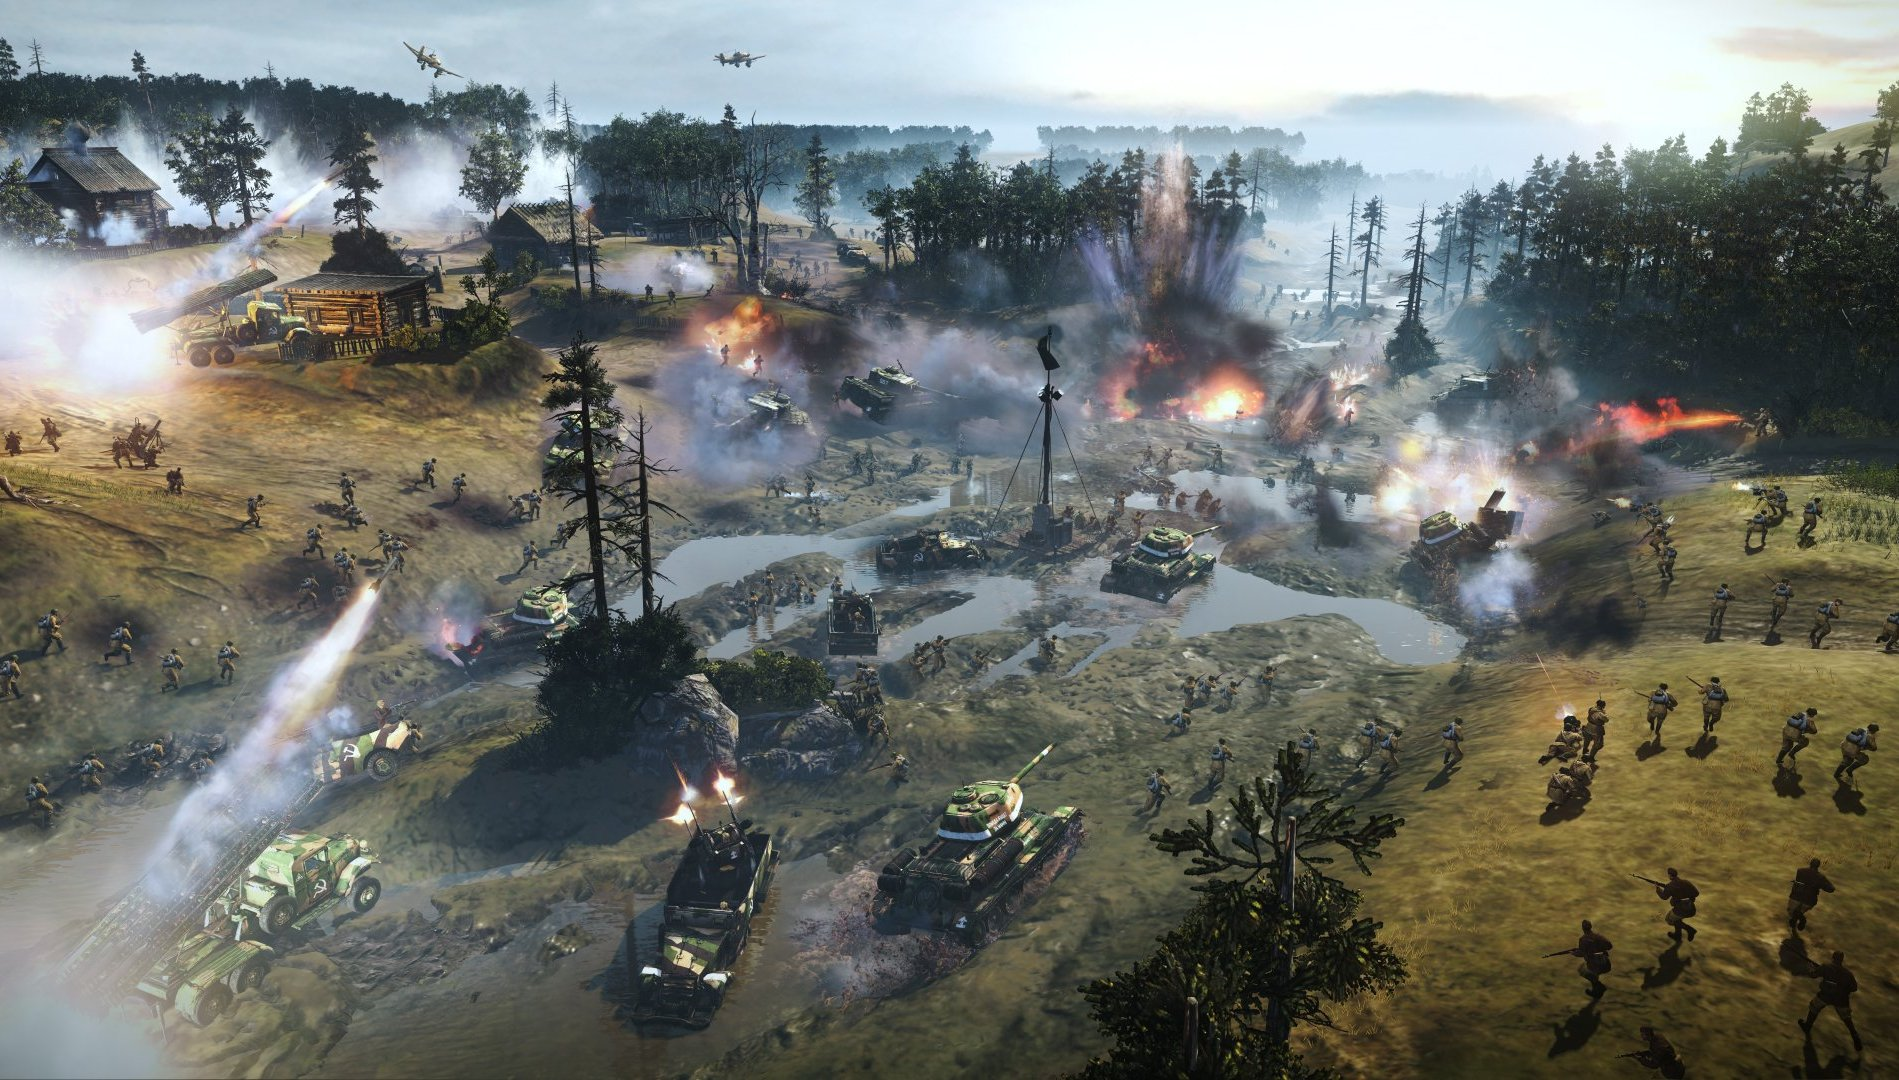 Company Of Heroes 2 Updates With Steam Workshop Free Maps And